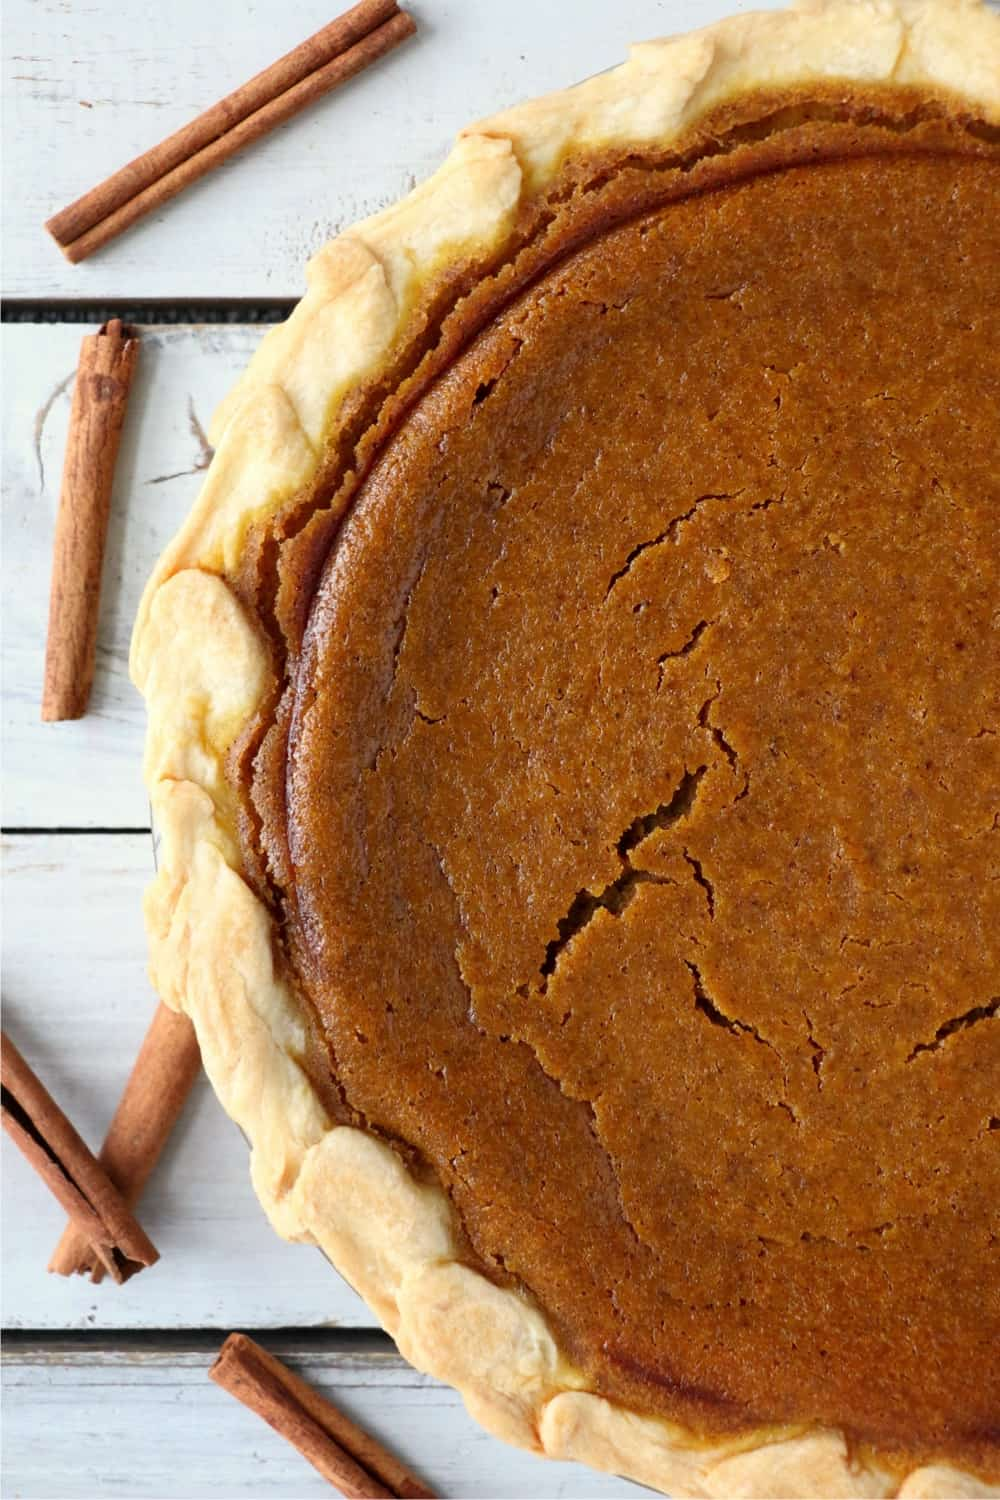 Baked pumpkin pie.